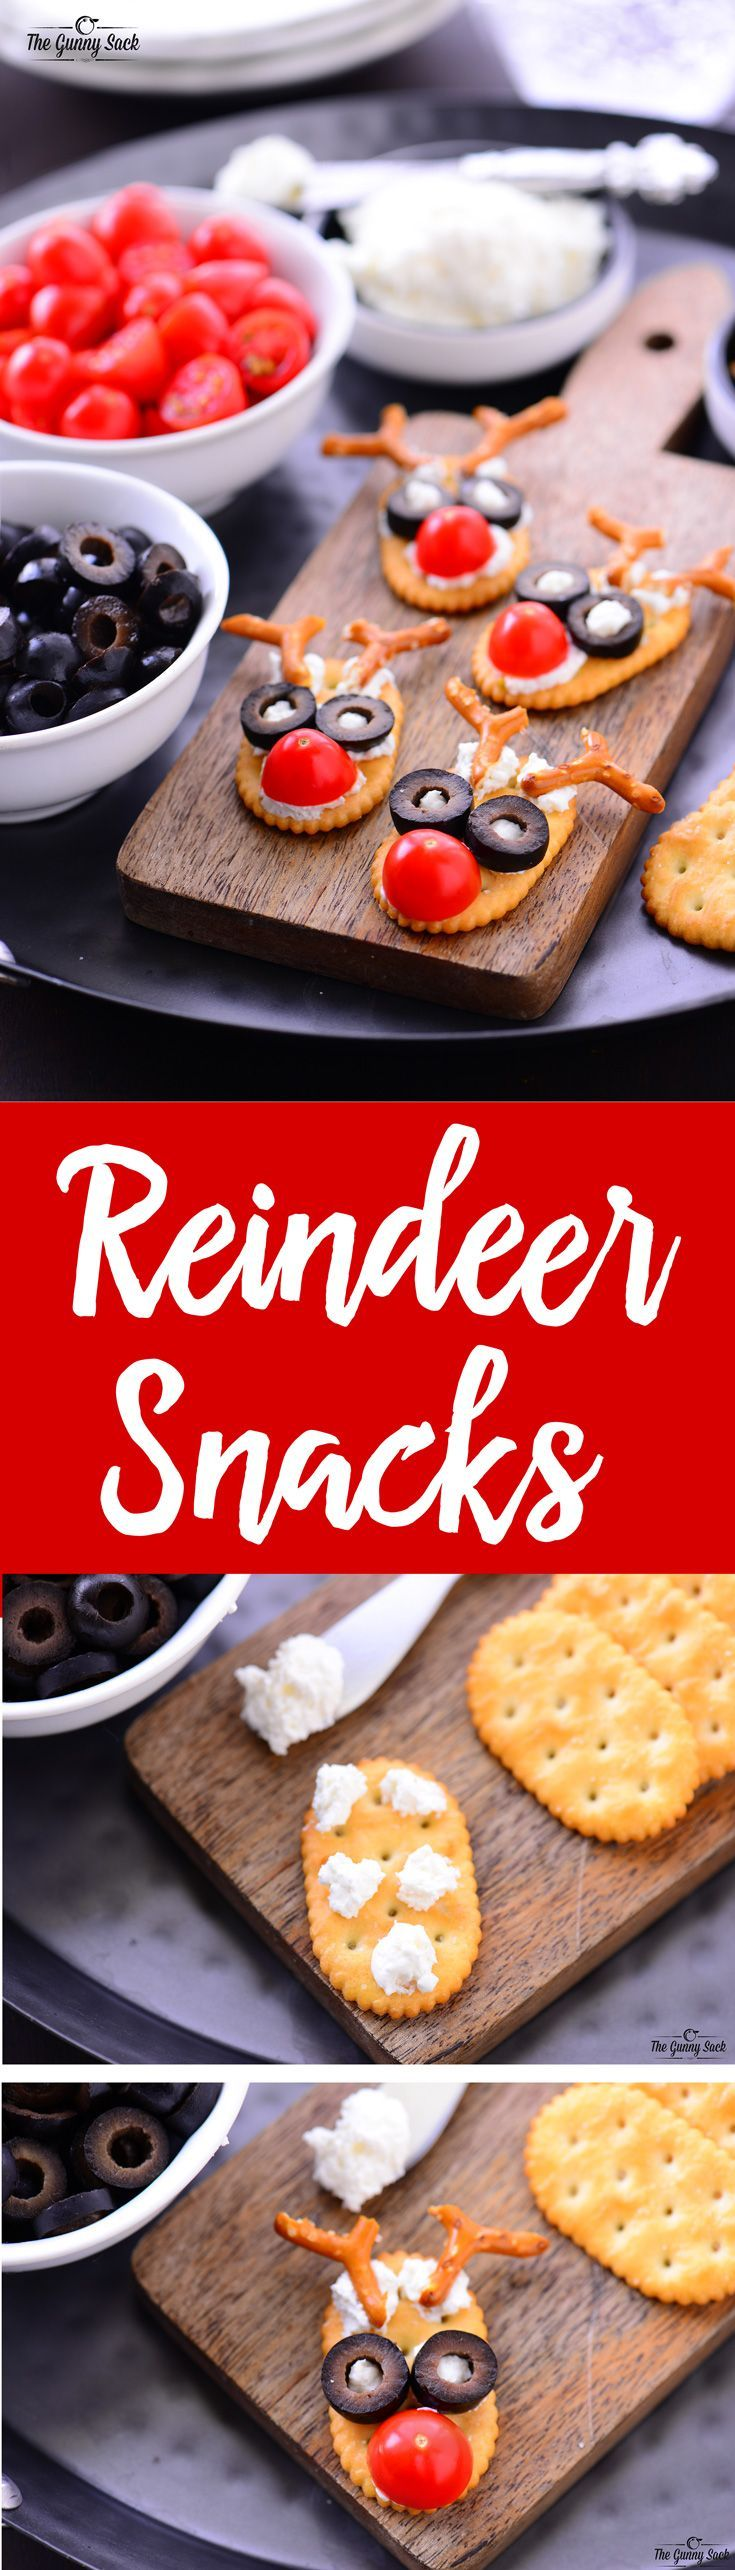 These simple, delicious Reindeer Snacks are sure to bring smiles to the faces of kids of all ages. They would be great for a holiday party, potluck or even as an after school snack! #ad